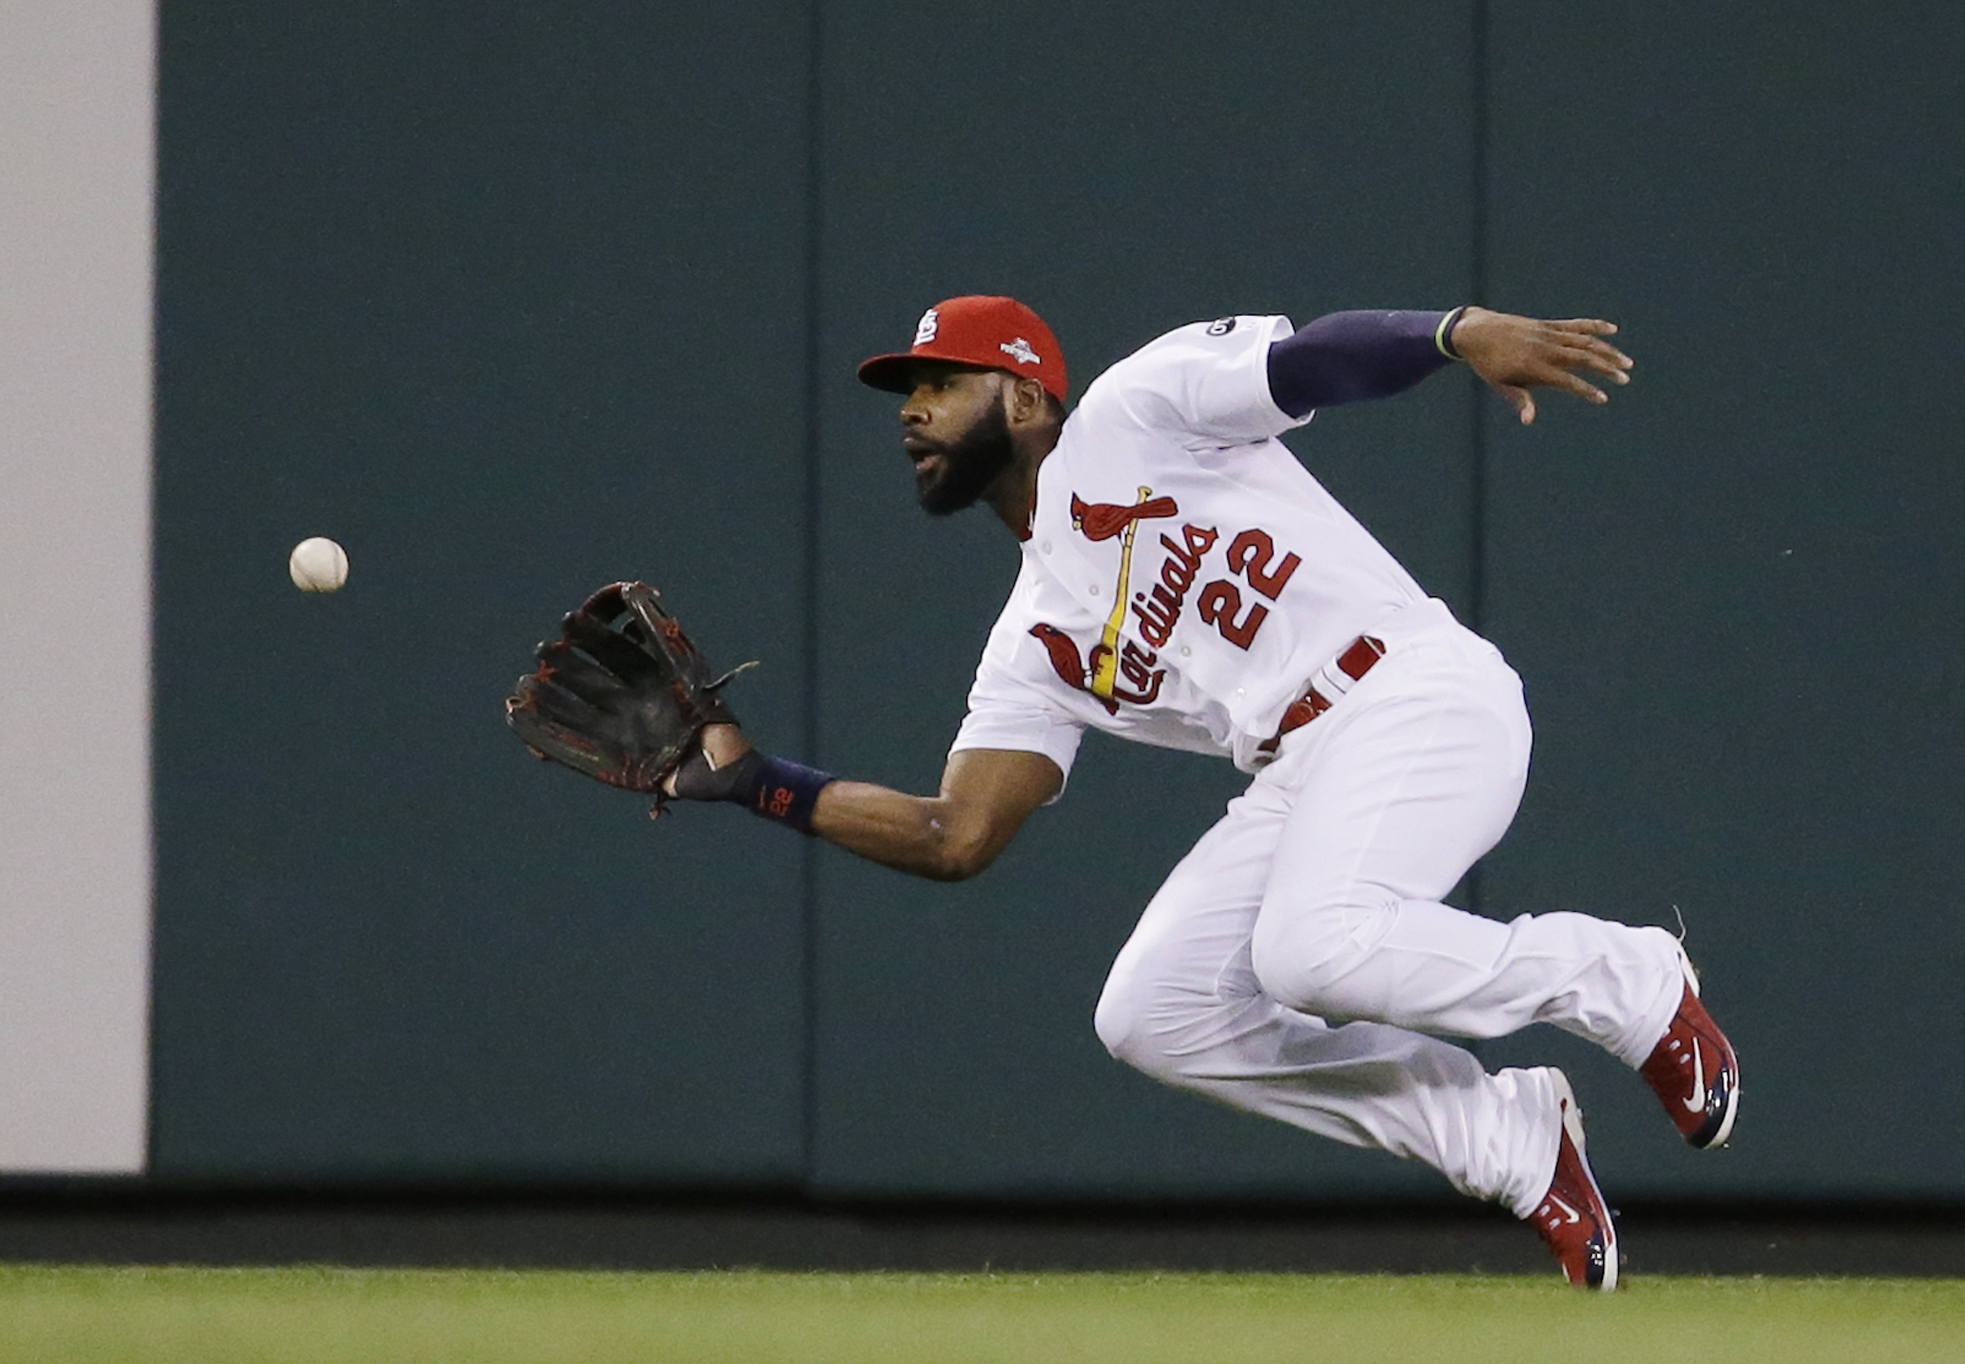 FILE - In this Oct. 9, 2015, file photo, St. Louis Cardinals right fielder Jason Heyward prepares to catch a ball hit by Chicago Cubs' Addison Russell during the third inning of Game 1 in baseball's National League Division Series in St. Louis. Heyward is